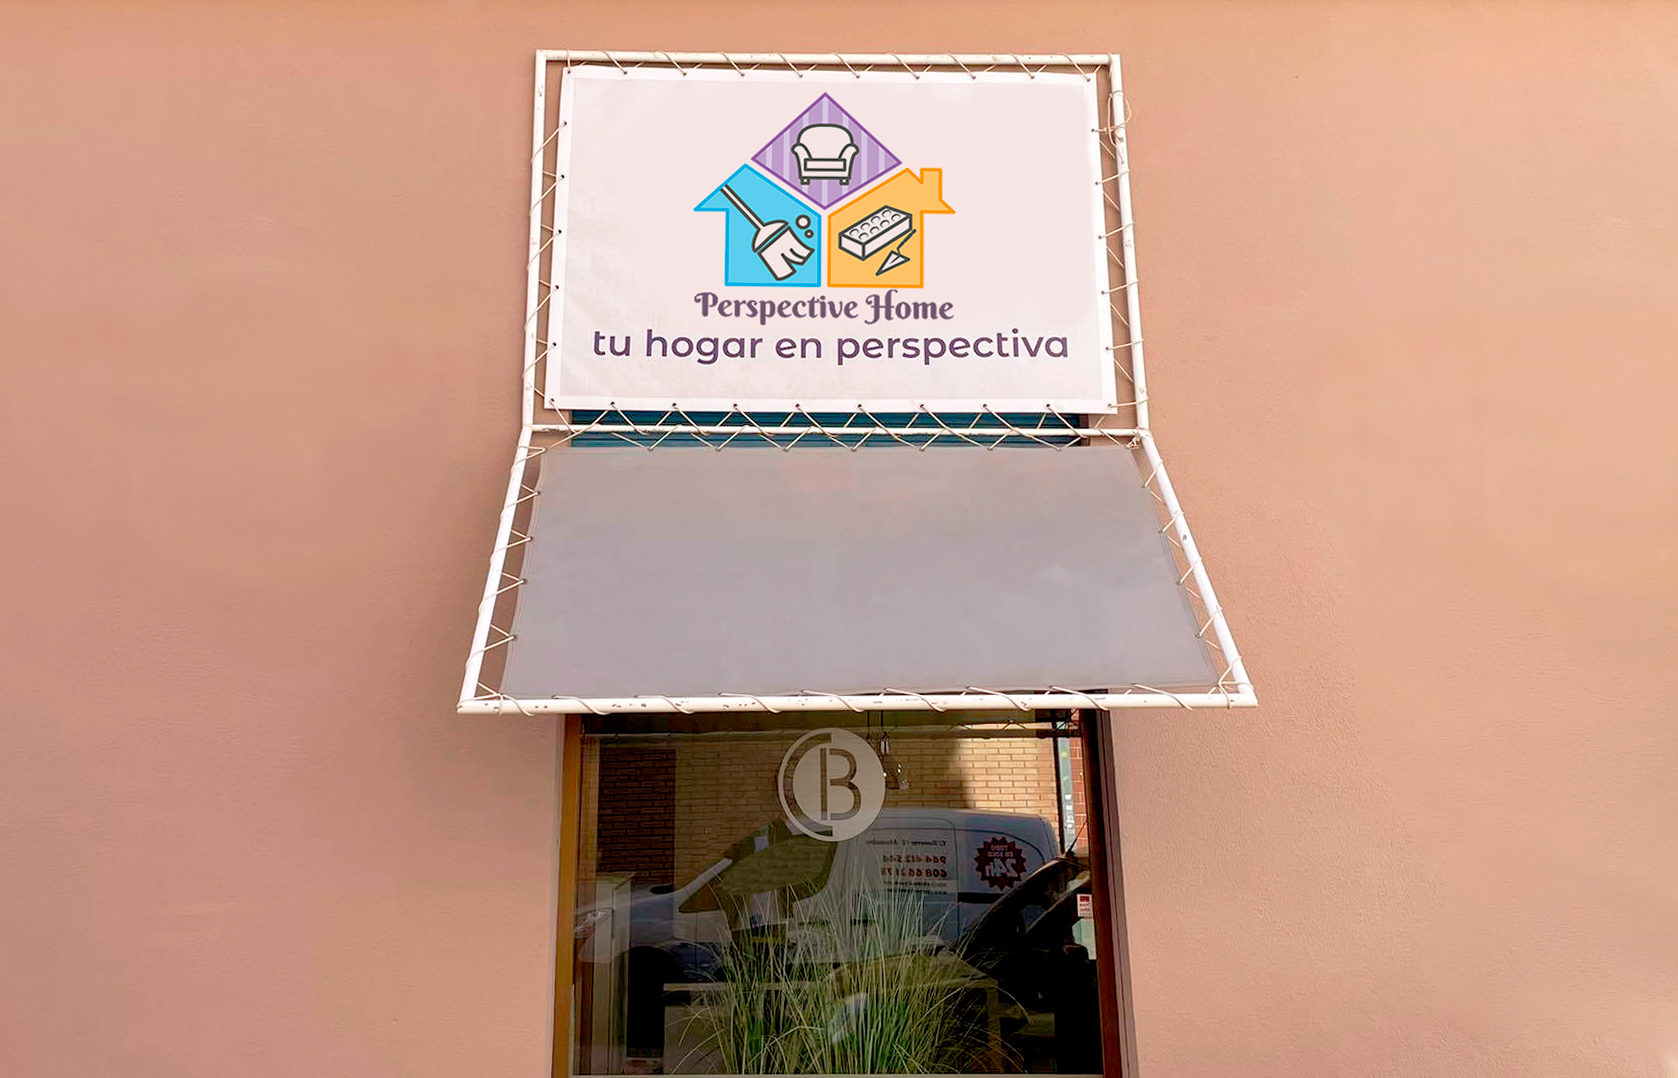 PERSPECTIVE HOME